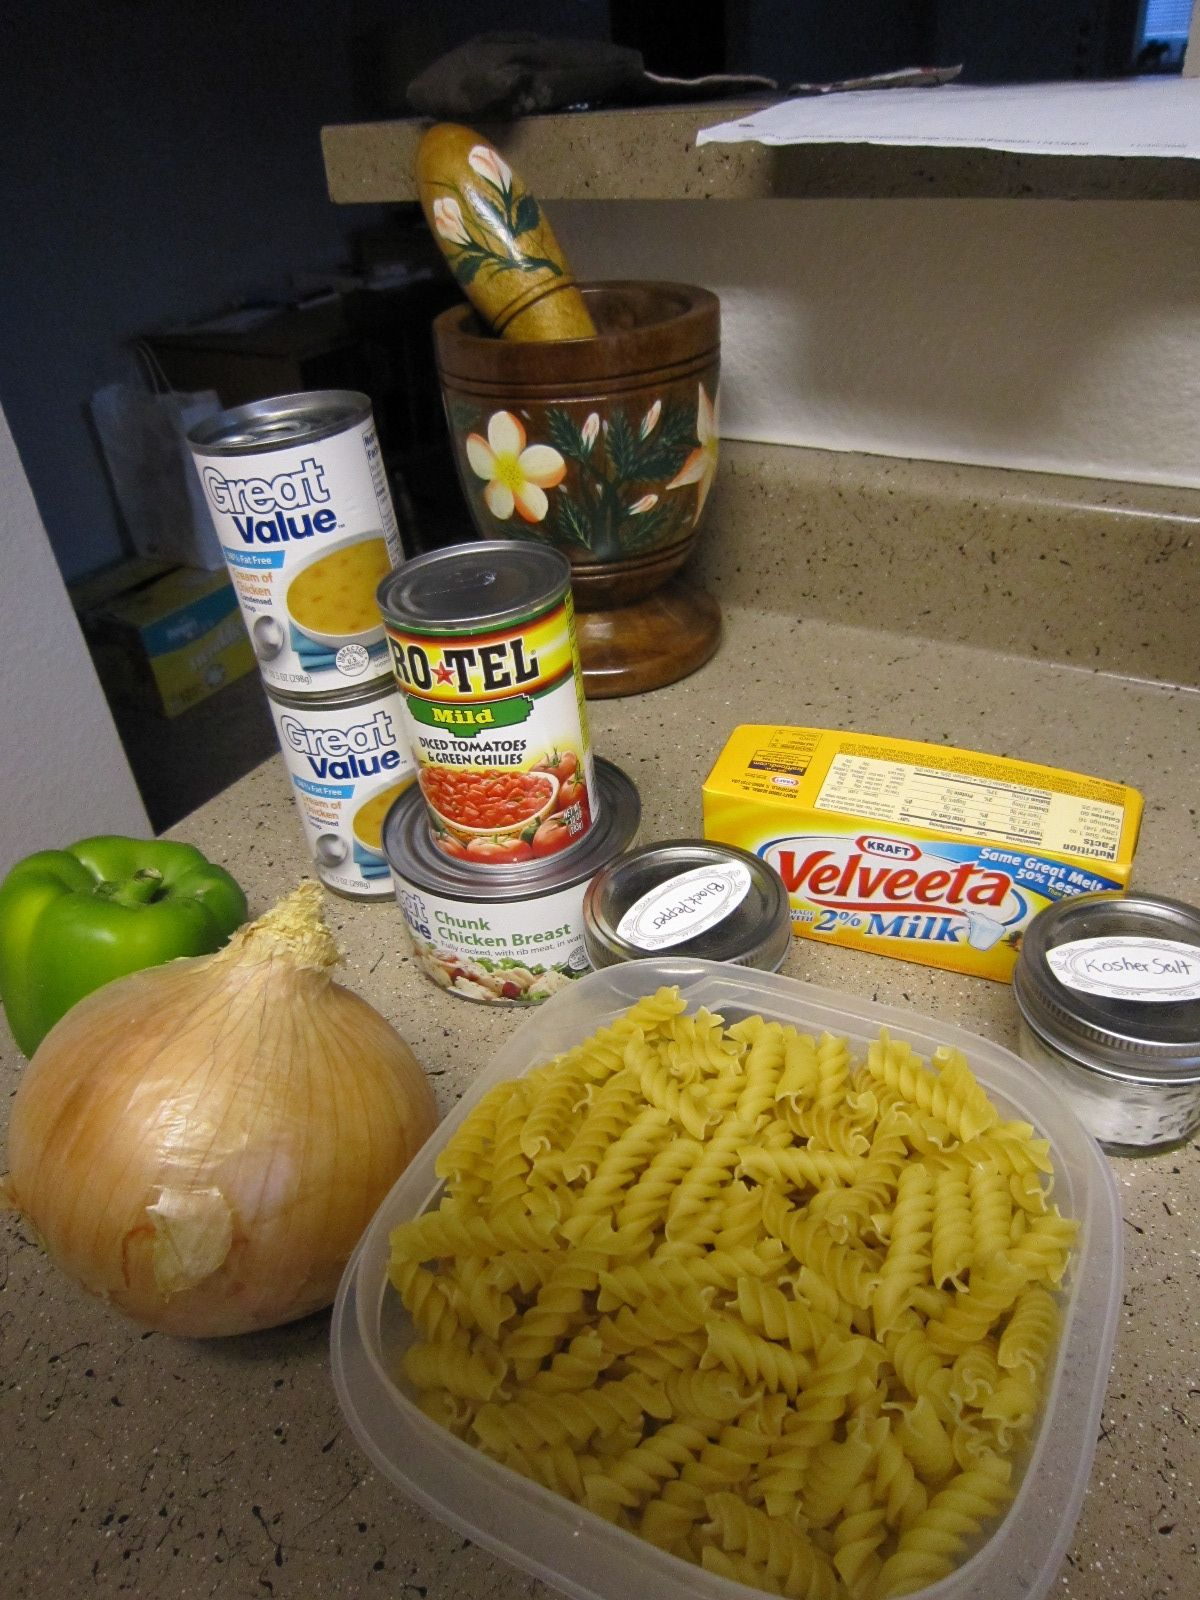 Crockpot cheesy chicken pasta. I love this recipe! I cooked it today, but I added taco seasoning, fresh garlic, and diced chicken. I will be doing this quick meal again!